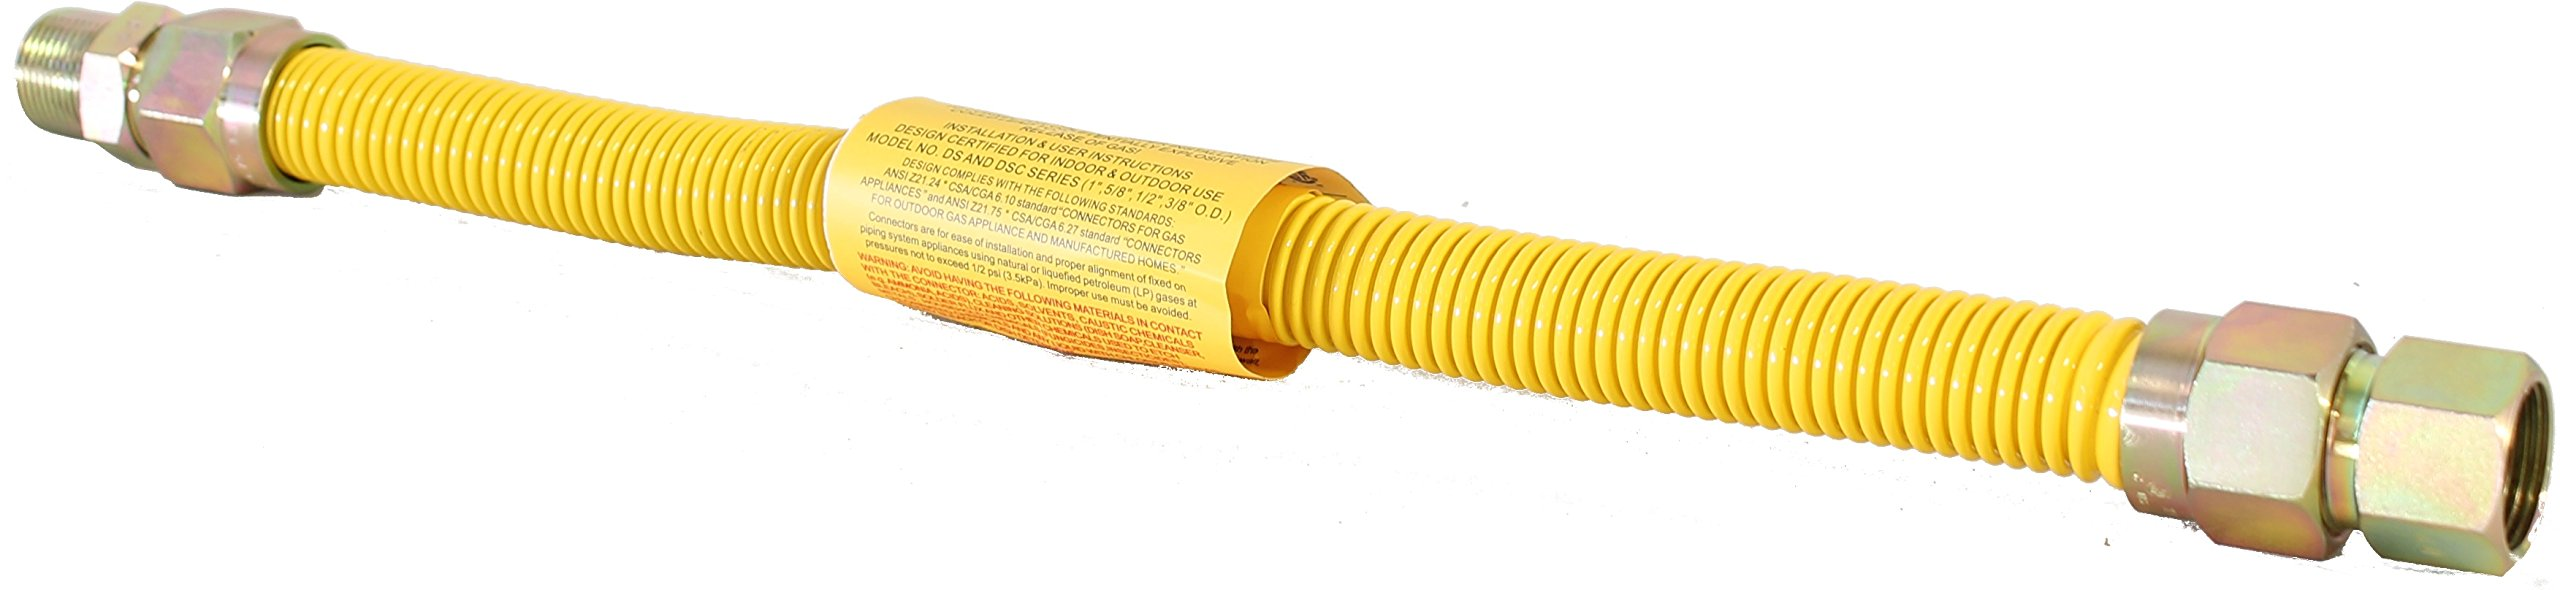 Duratrac Yellow Coated Stainless Steel 1/2'' MIP x 1/2'' FIP x 18'' Full Flow (1/2'' OD) Gas Flex Connector